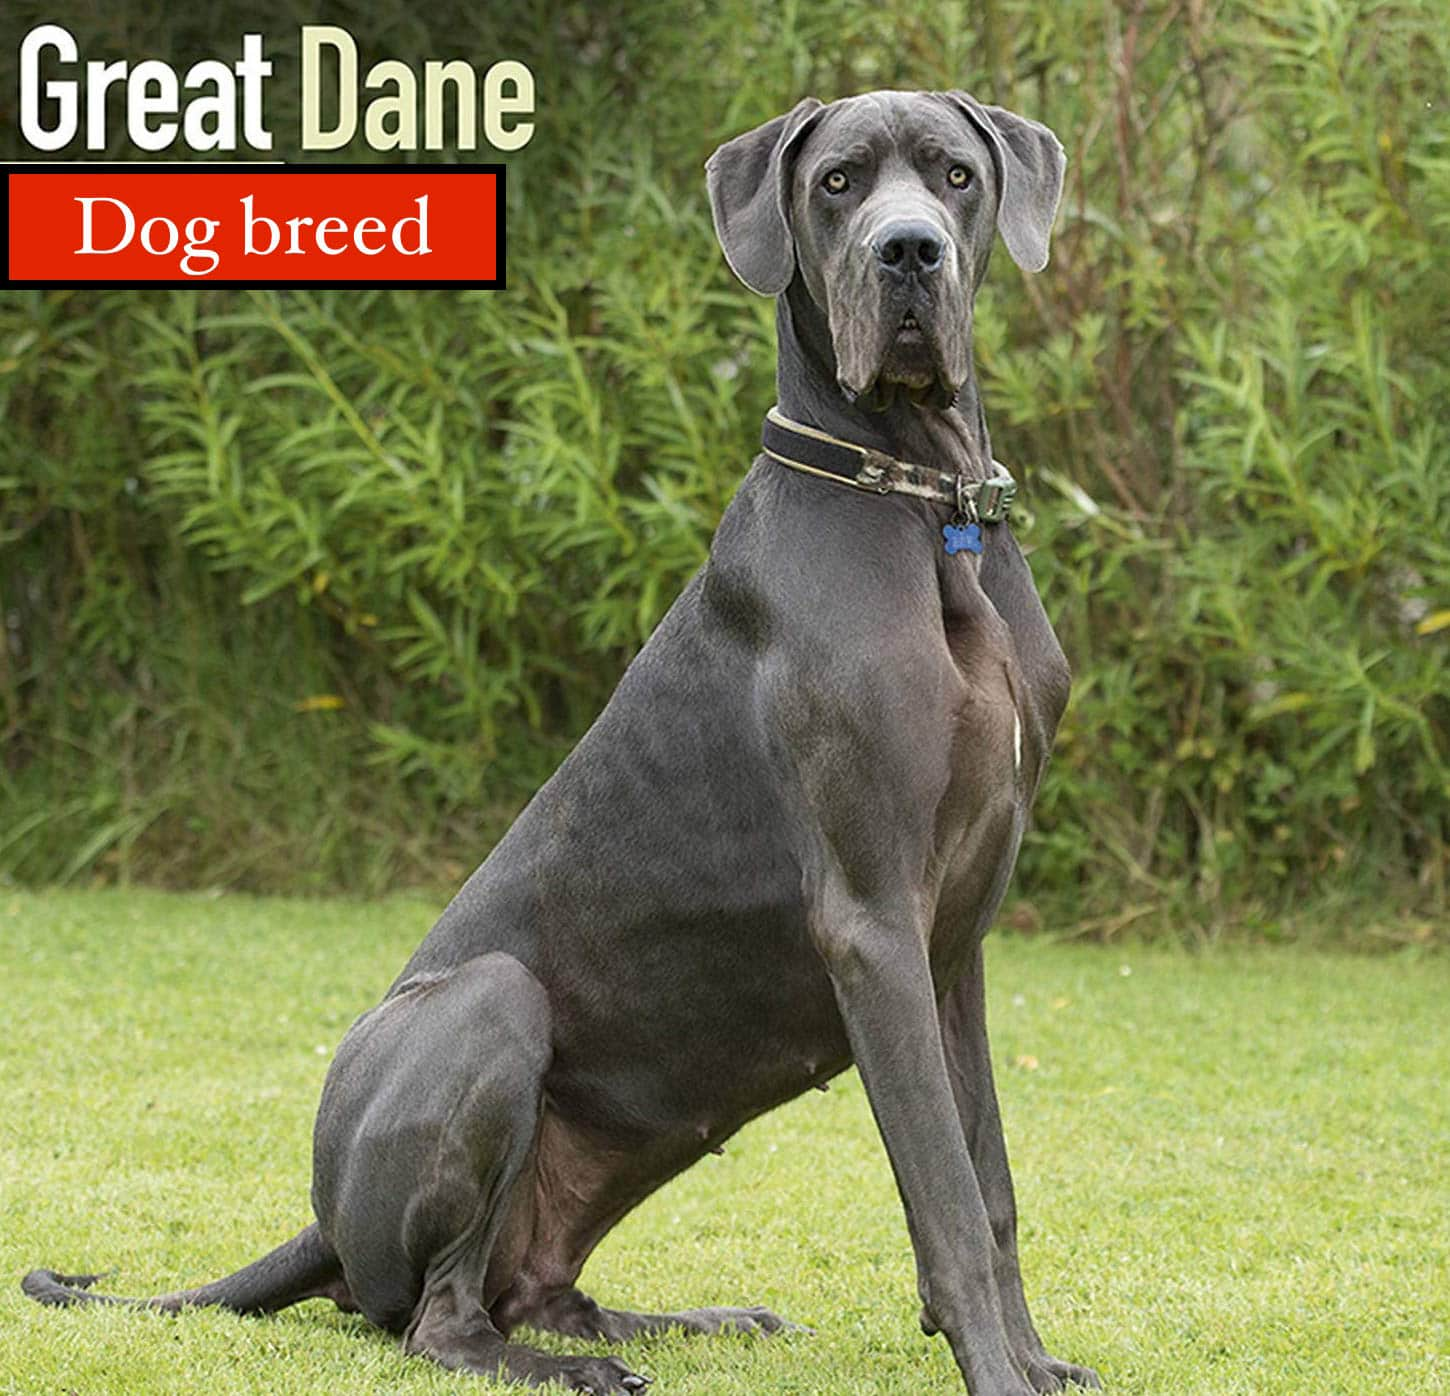 great dane is one of the most aggressive dogs